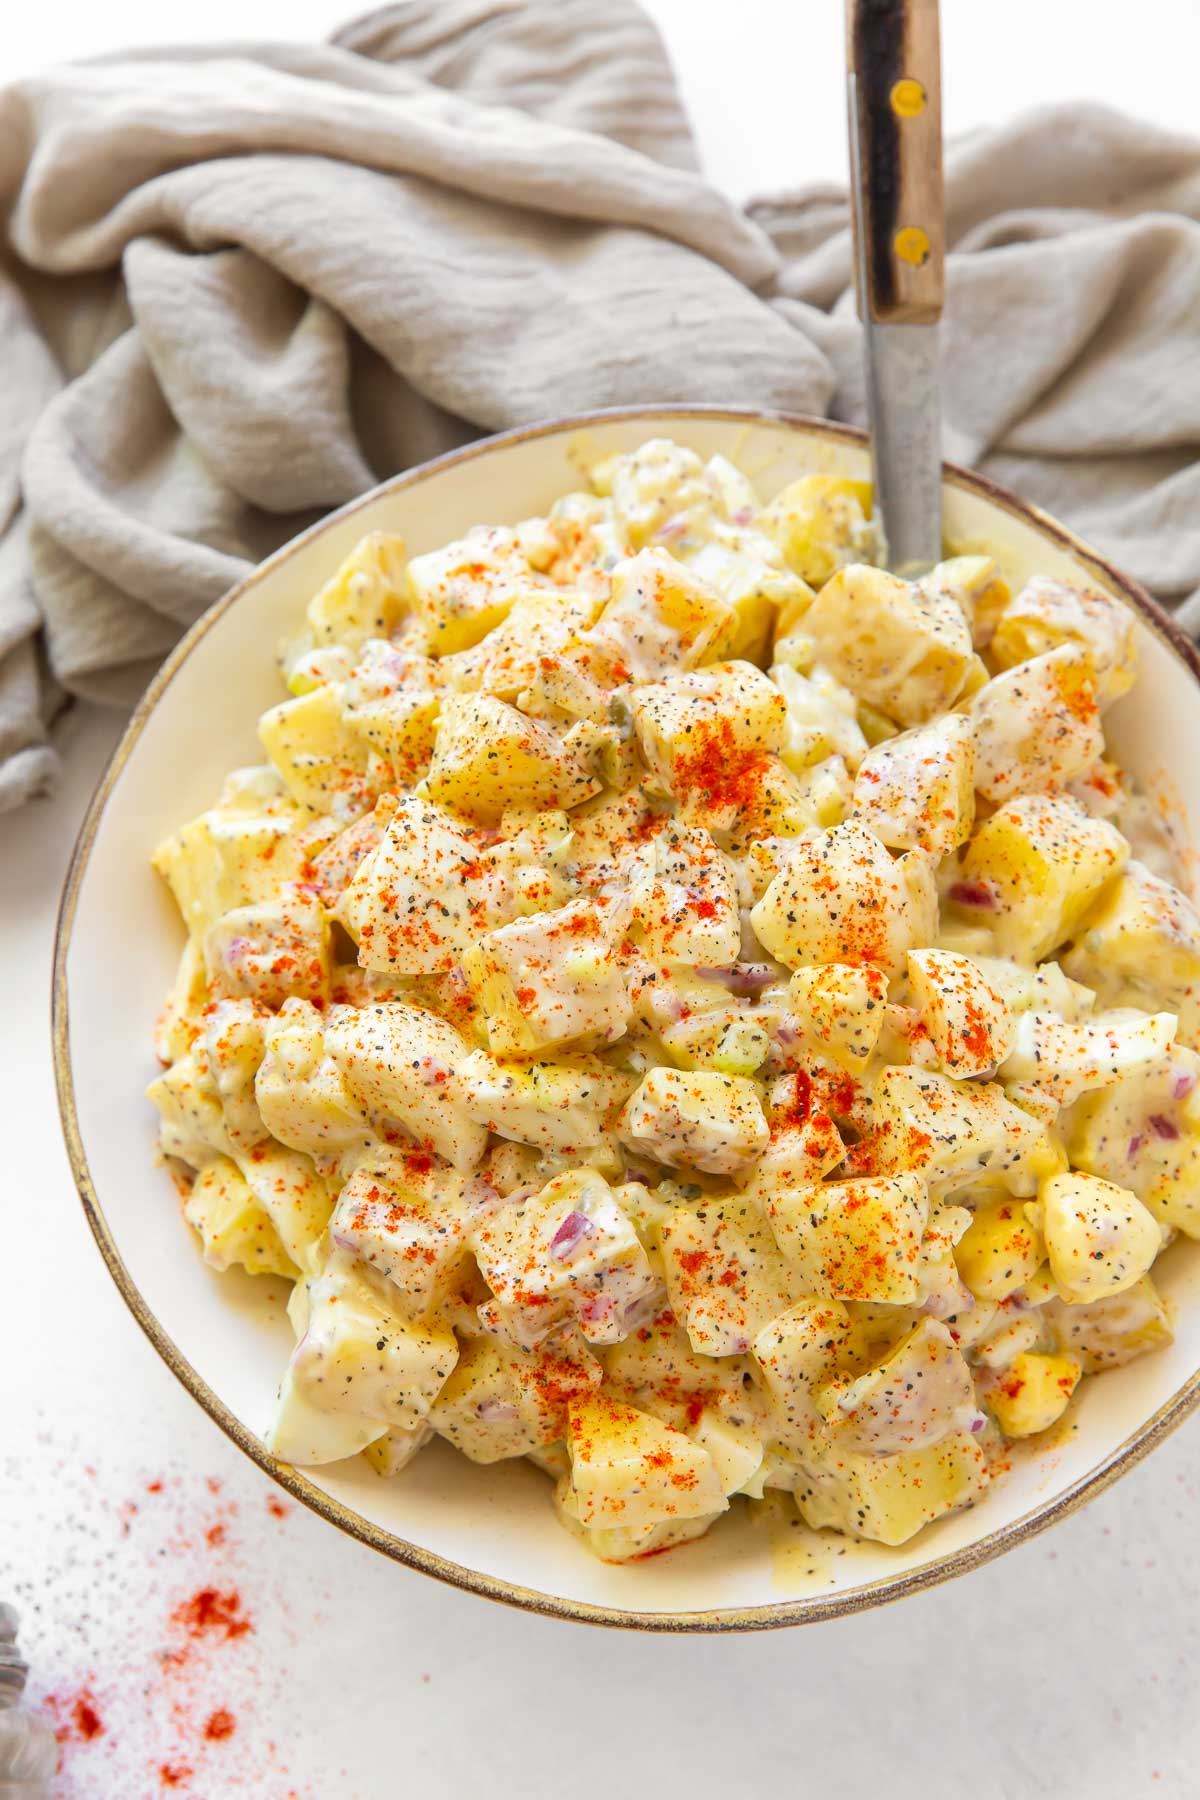 potato salad in a serving bowl with a serving spoon